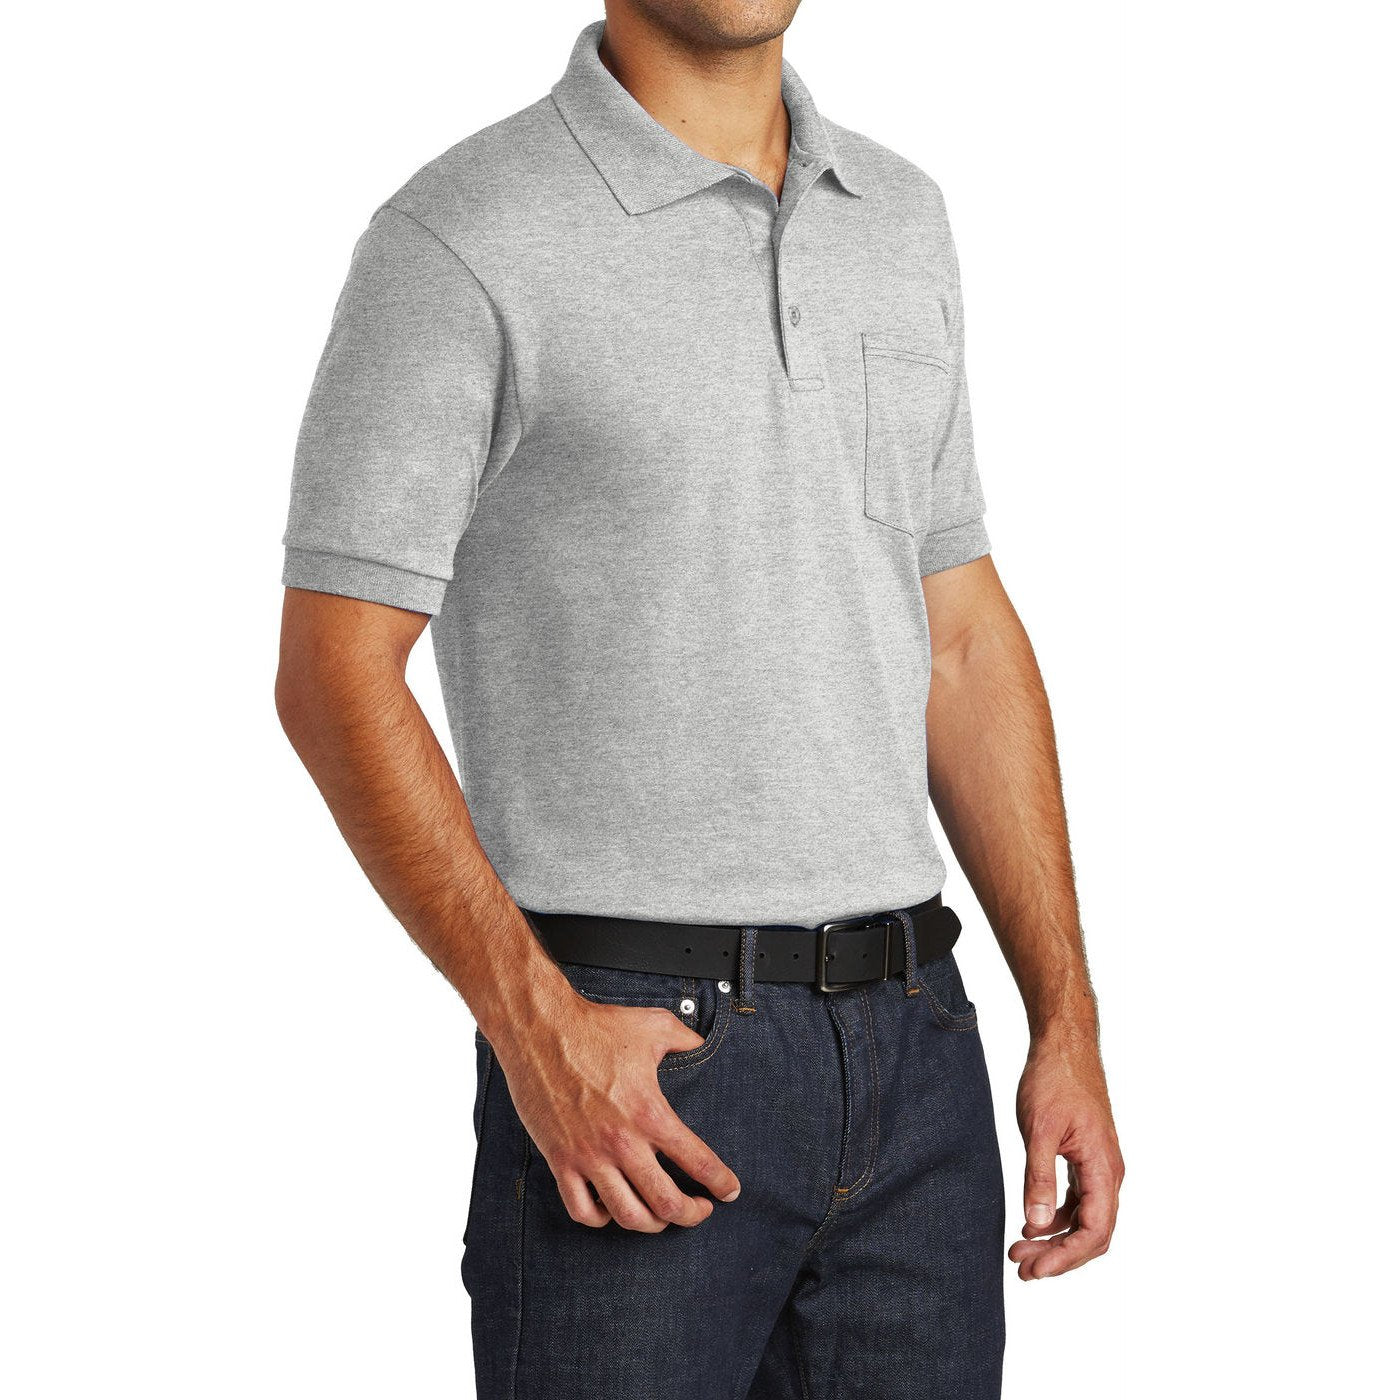 Mafoose Men's Core Blend Jersey Knit Pocket Polo Shirt Ash